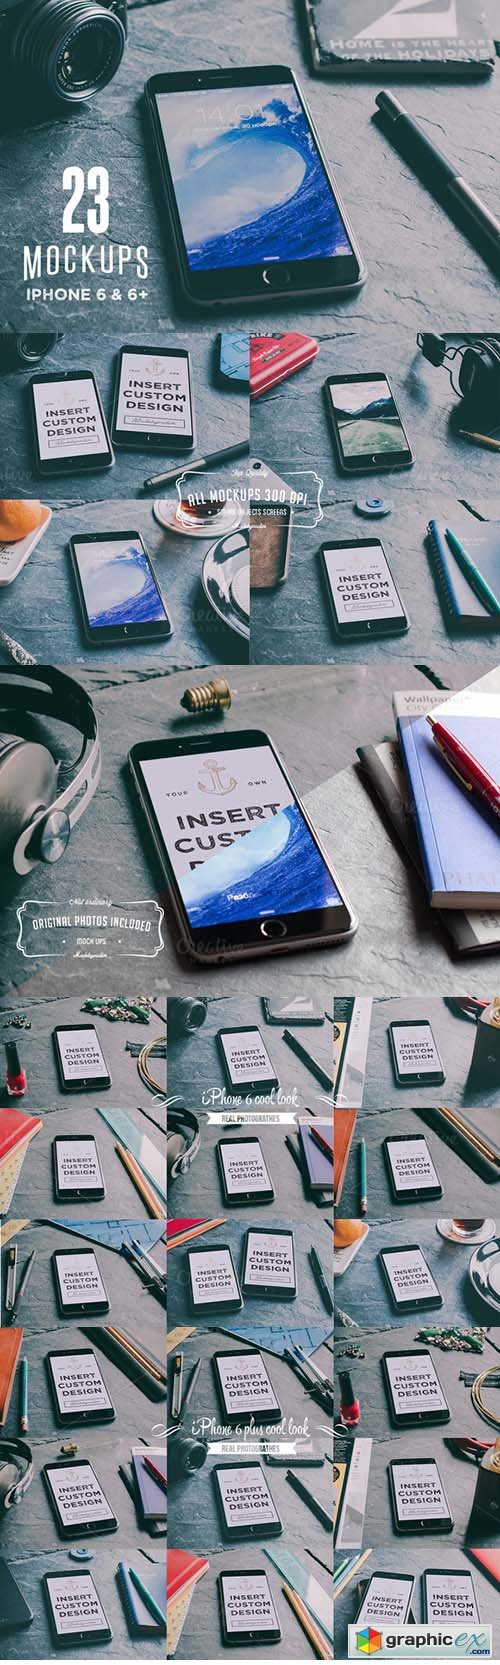 23 Cool iPhone 6 & 6+ mockups